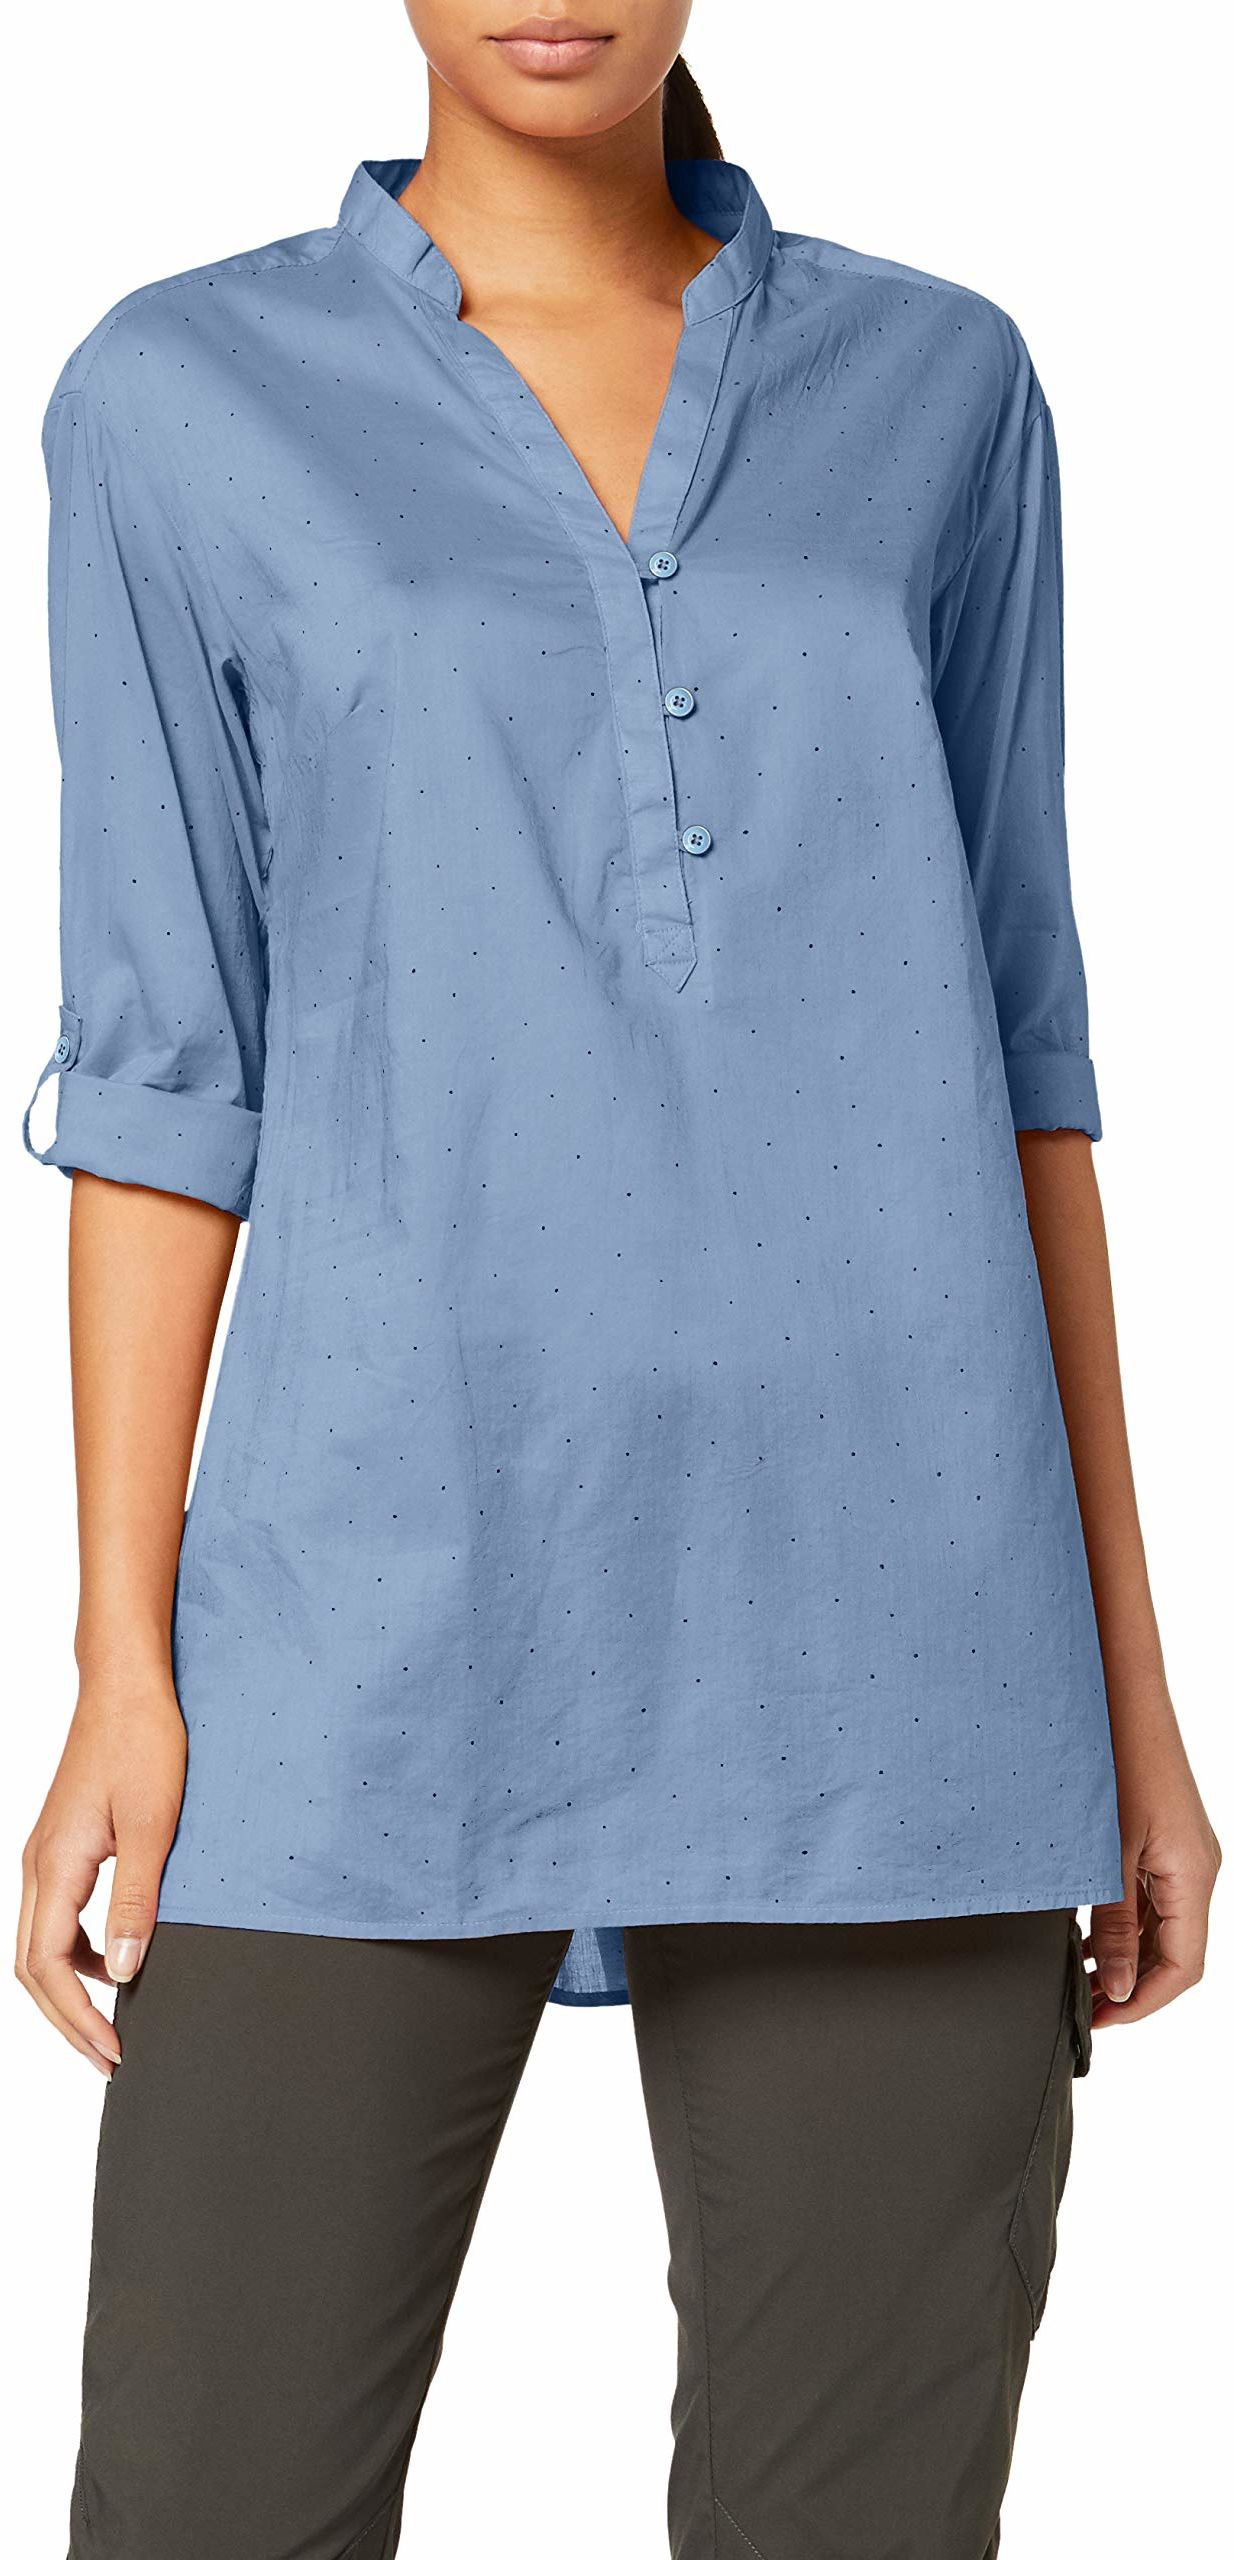 Columbia Early Tide Tunic Bluse, Blue Dusk Dots, L